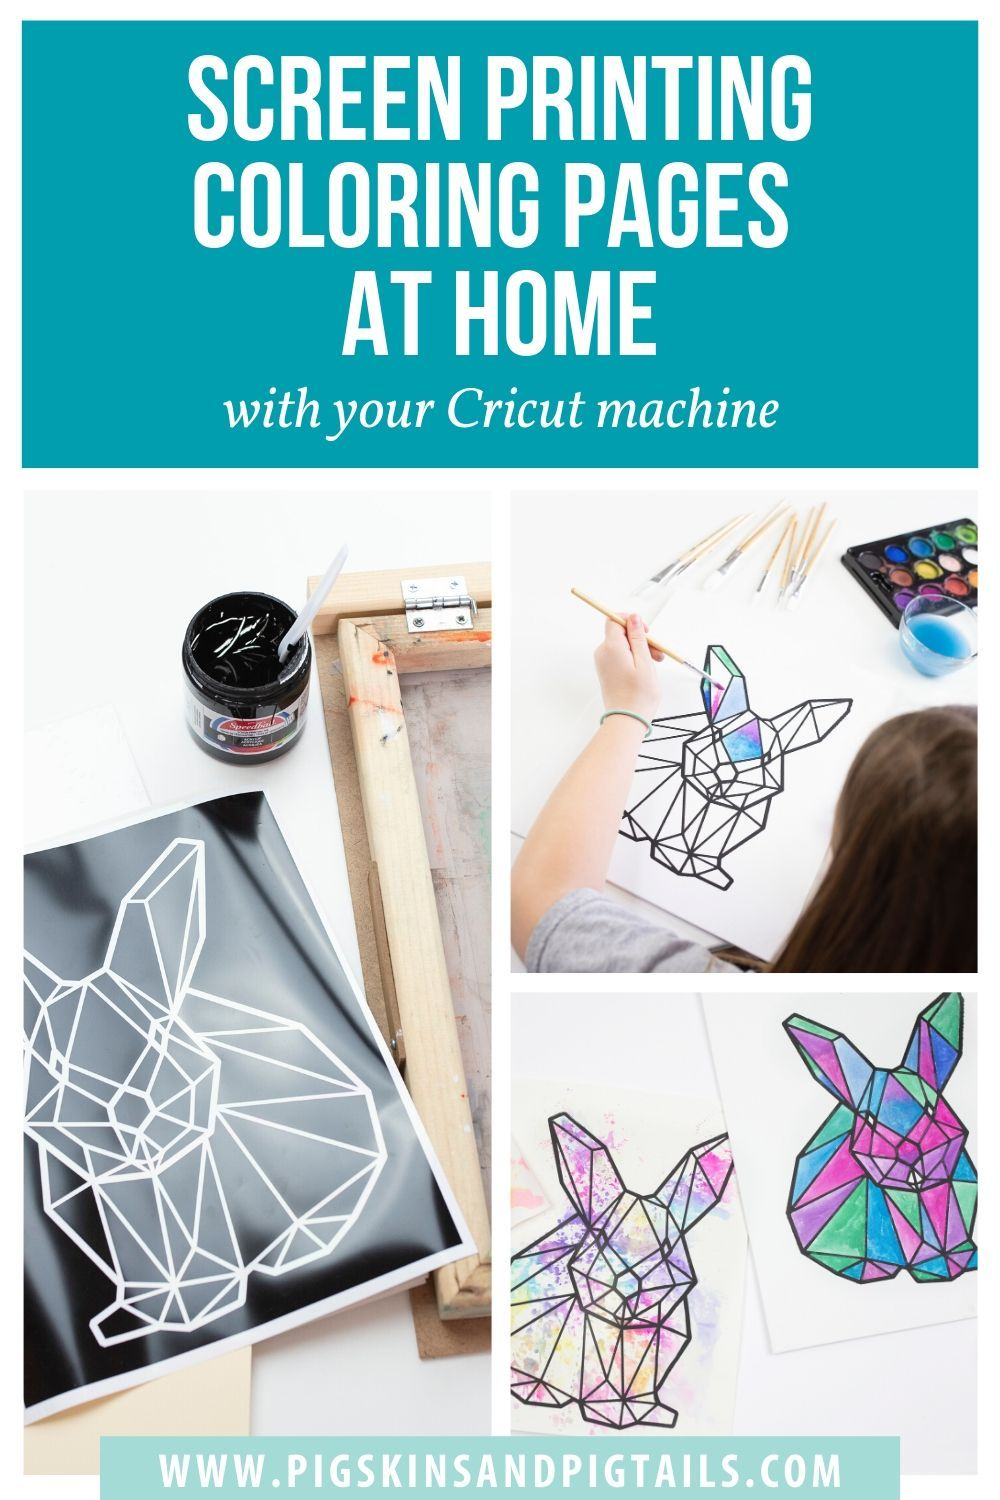 How to Screen Print Coloring Pages Using Supplies You Have